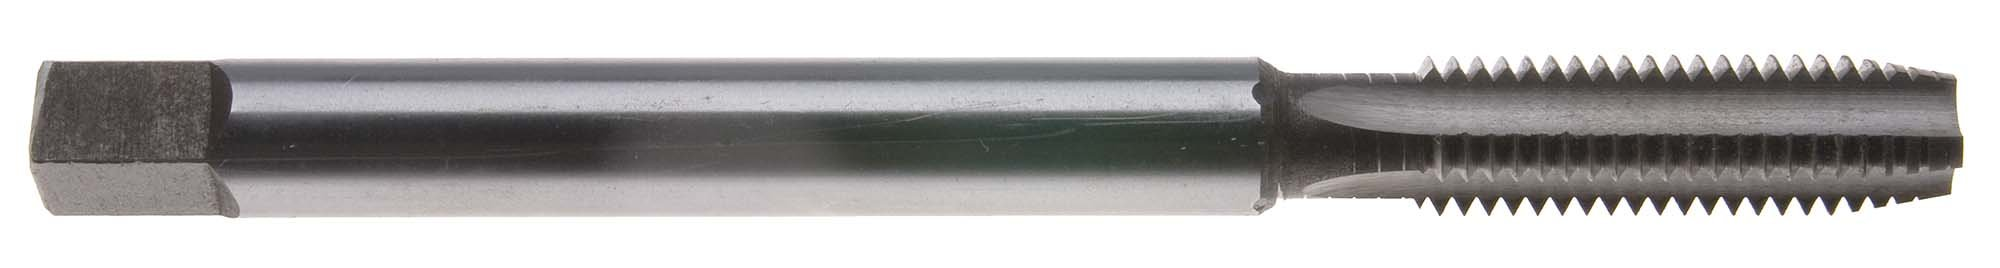 7/16-14 x 6'' Long Plug Style Pulley Tap, High Speed Steel